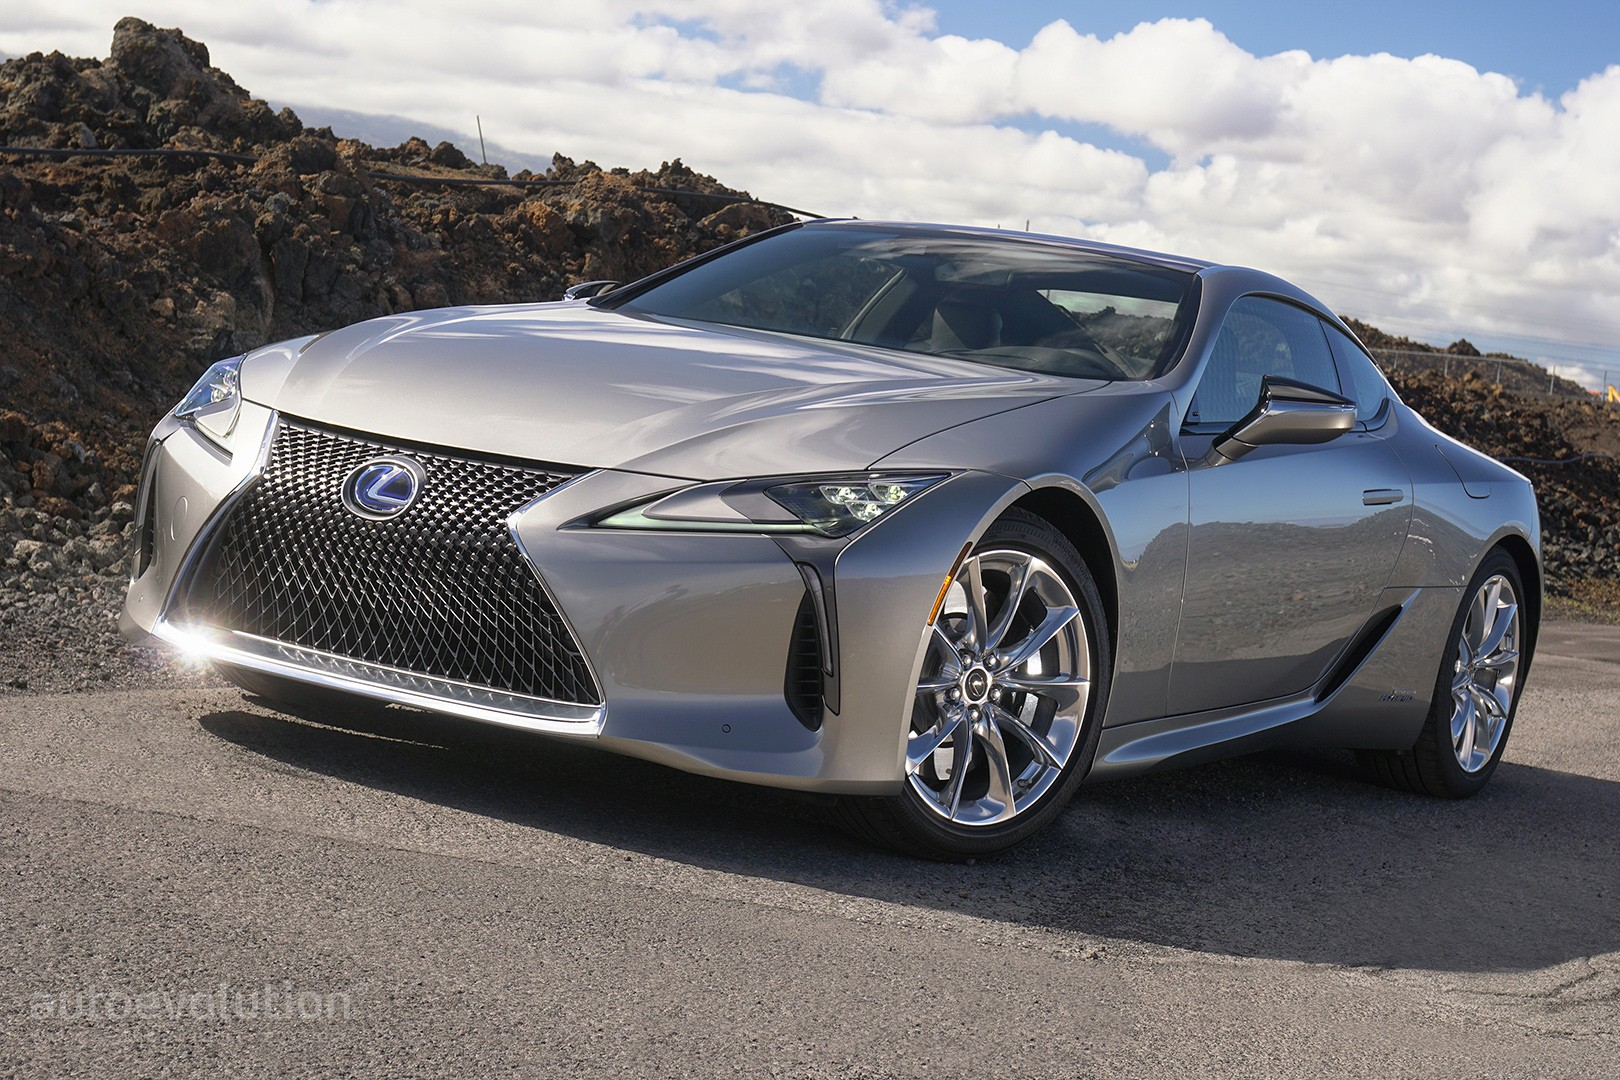 2017 Lexus Lc 500 >> Driven: 2017 Lexus LC 500 and LC 500h - autoevolution